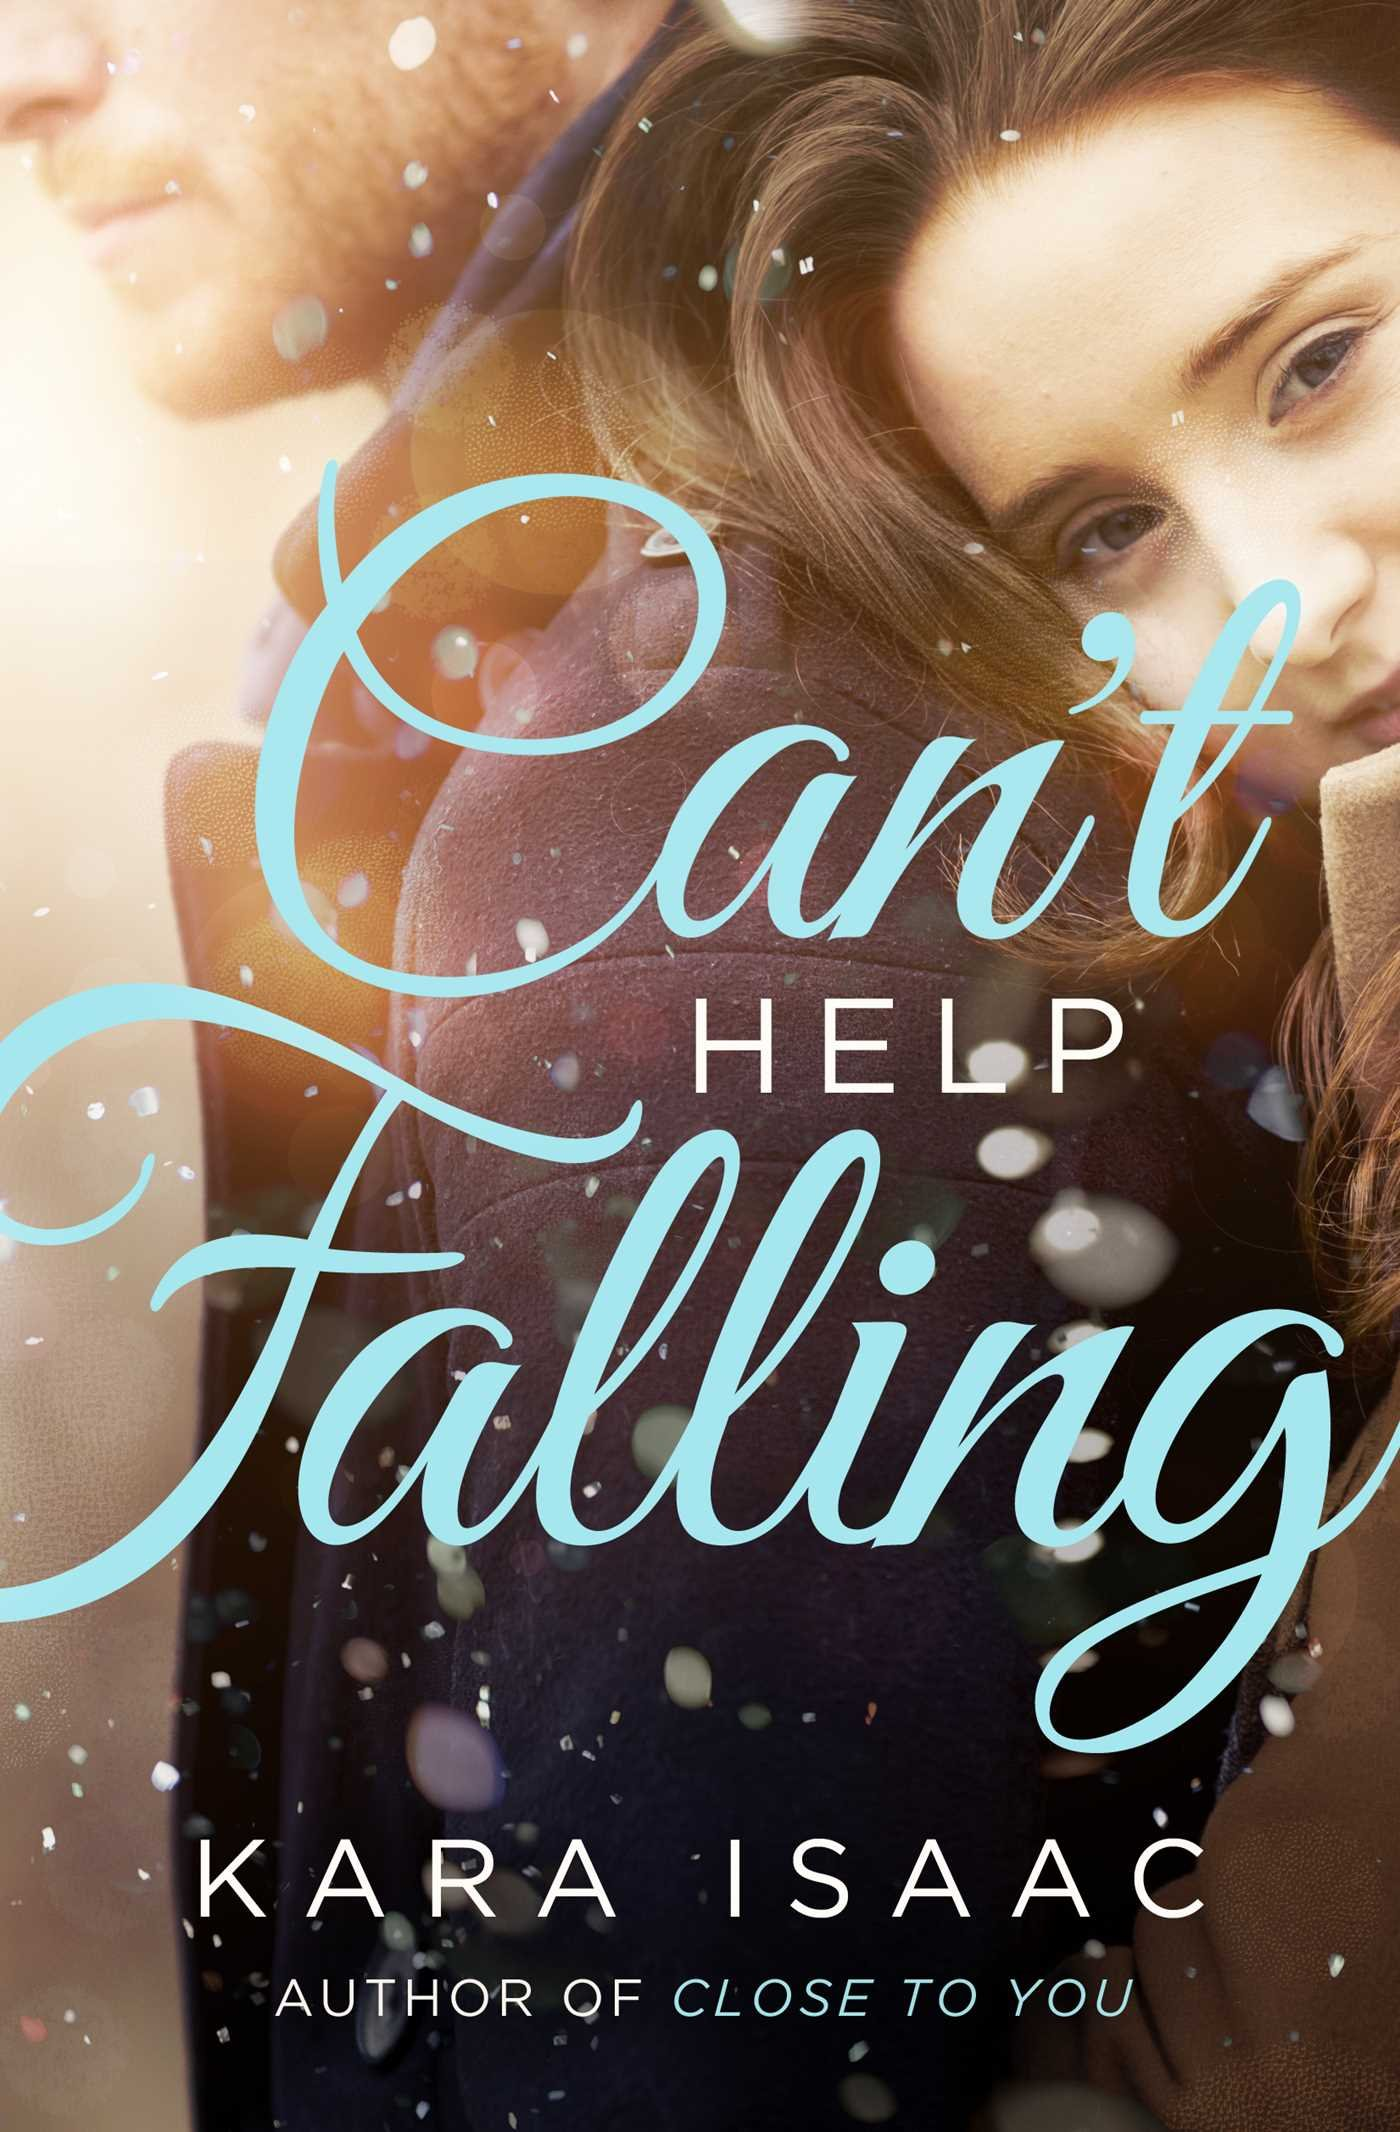 Image result for can't help falling in love book cover kara isaac